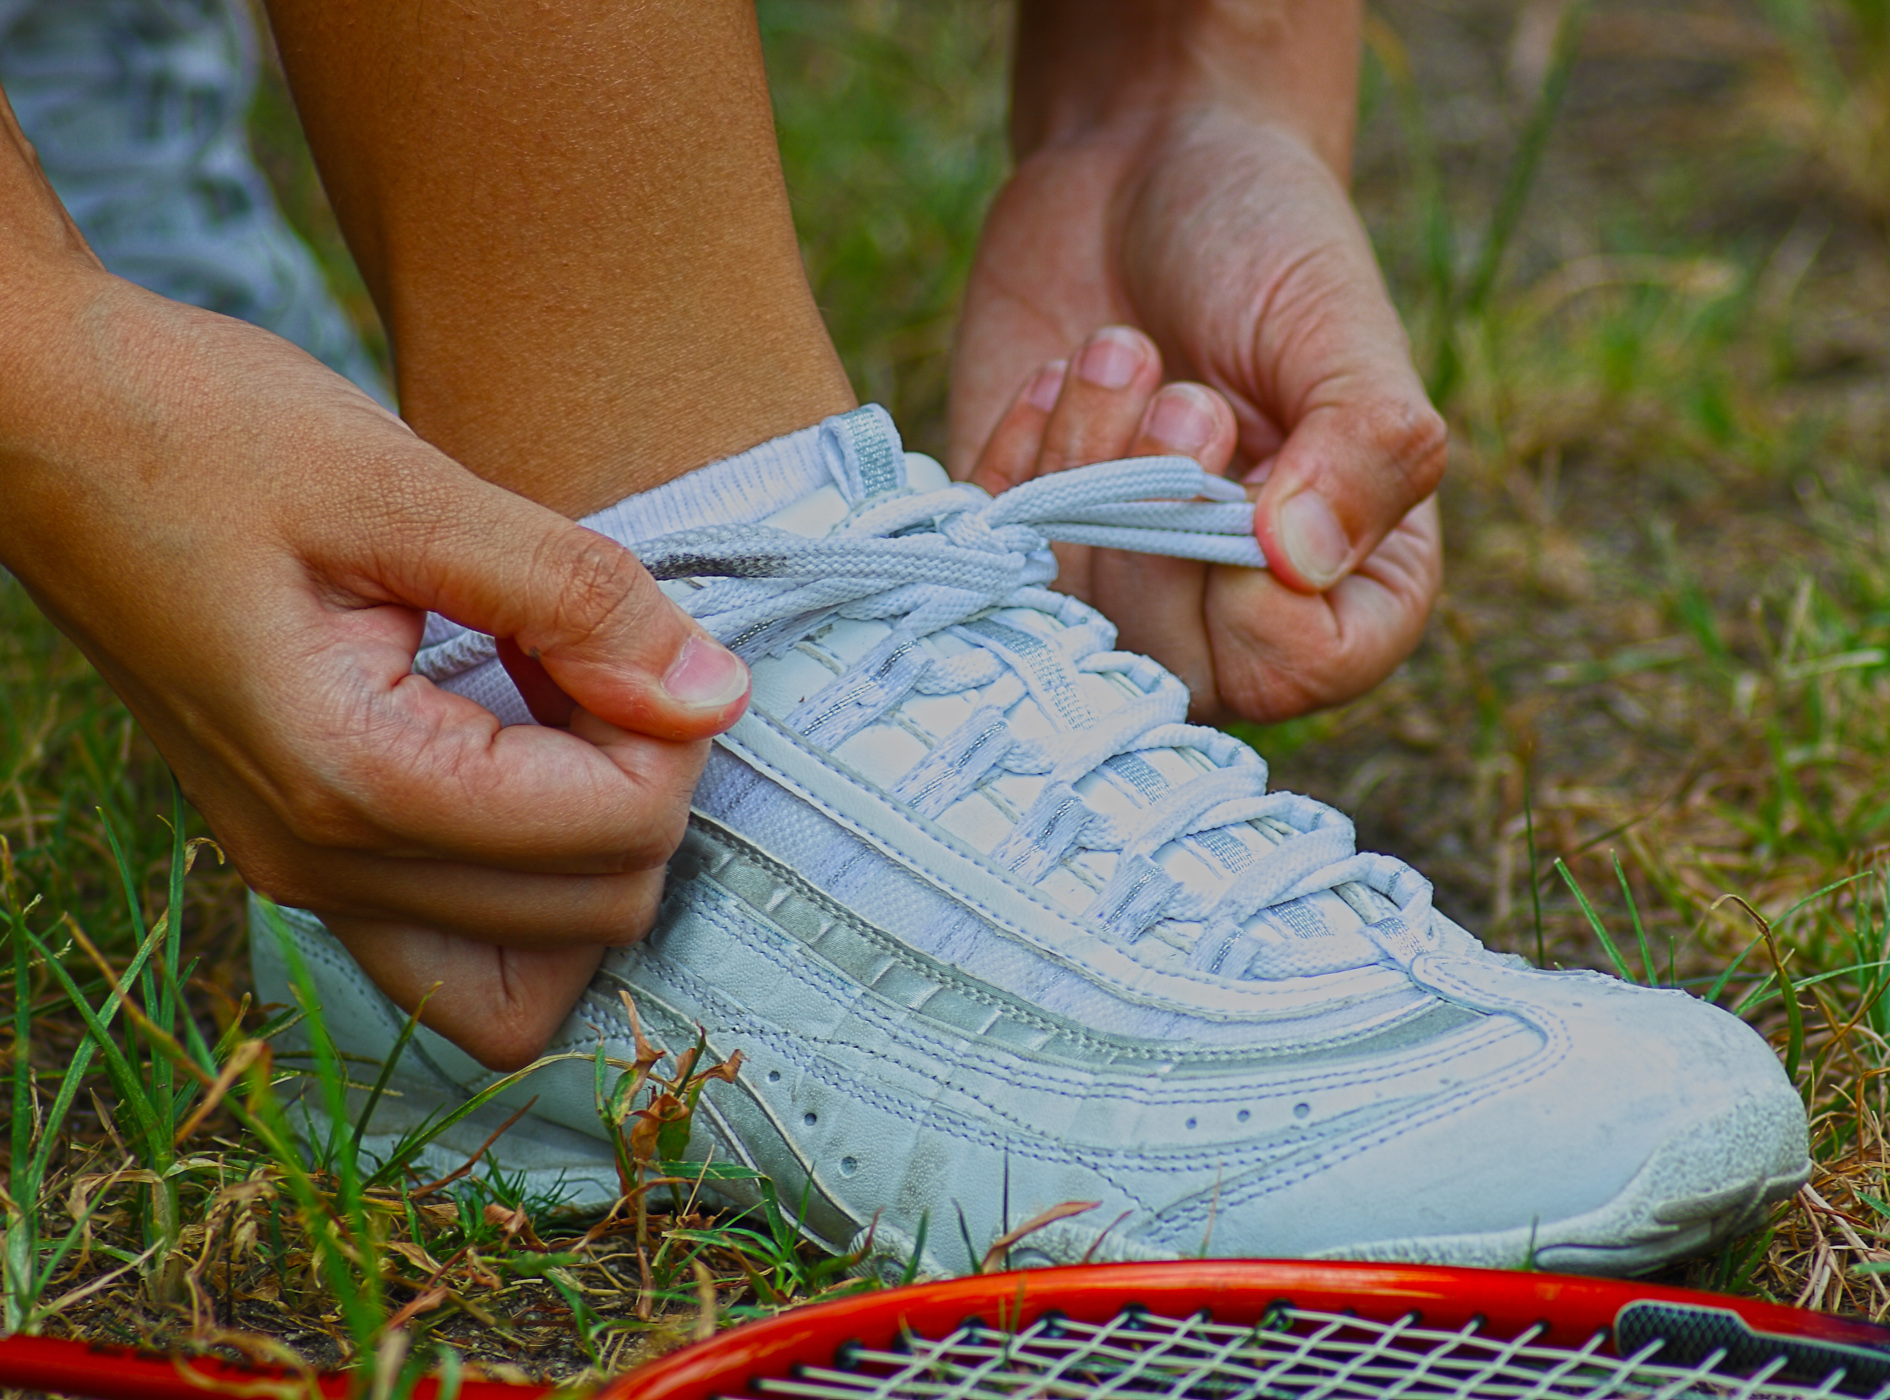 Tying shoes ready for a game of badminton photo